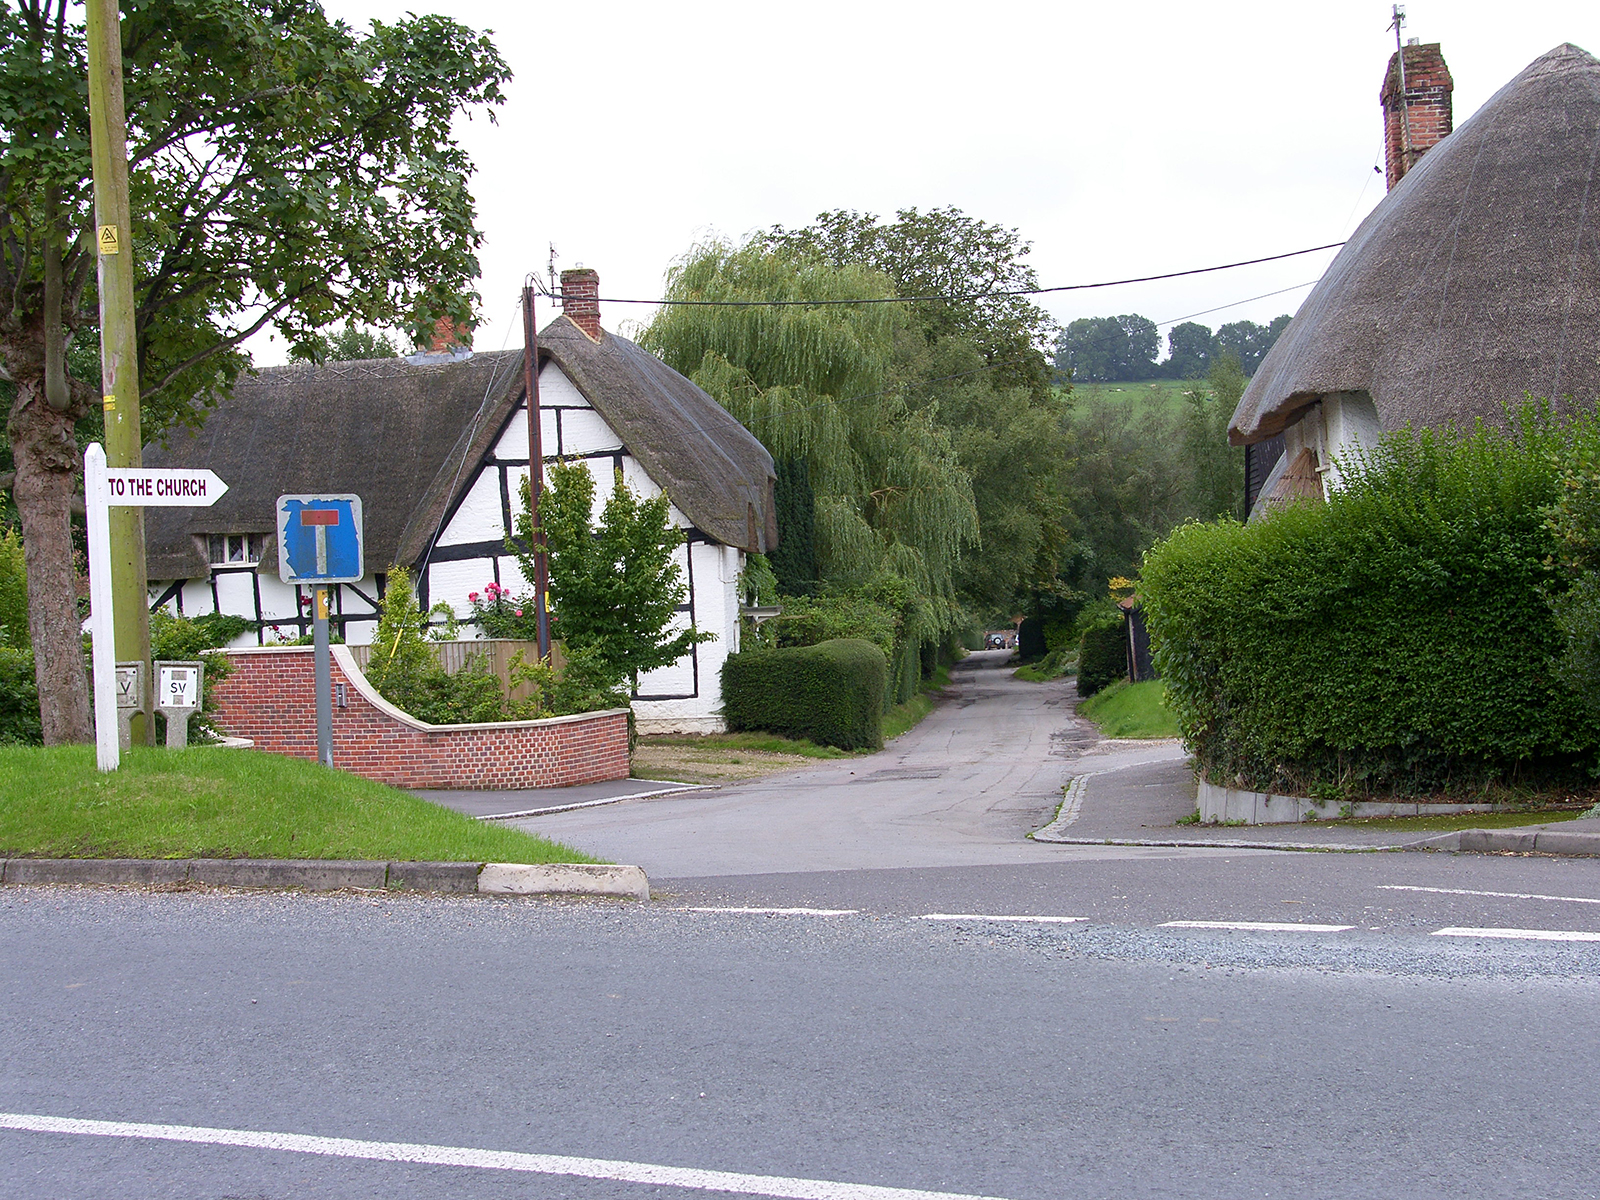 The beautiful serene setting of Church Lane, in Wiltshire's Best Kept Village 2017 - Mildenhall....!